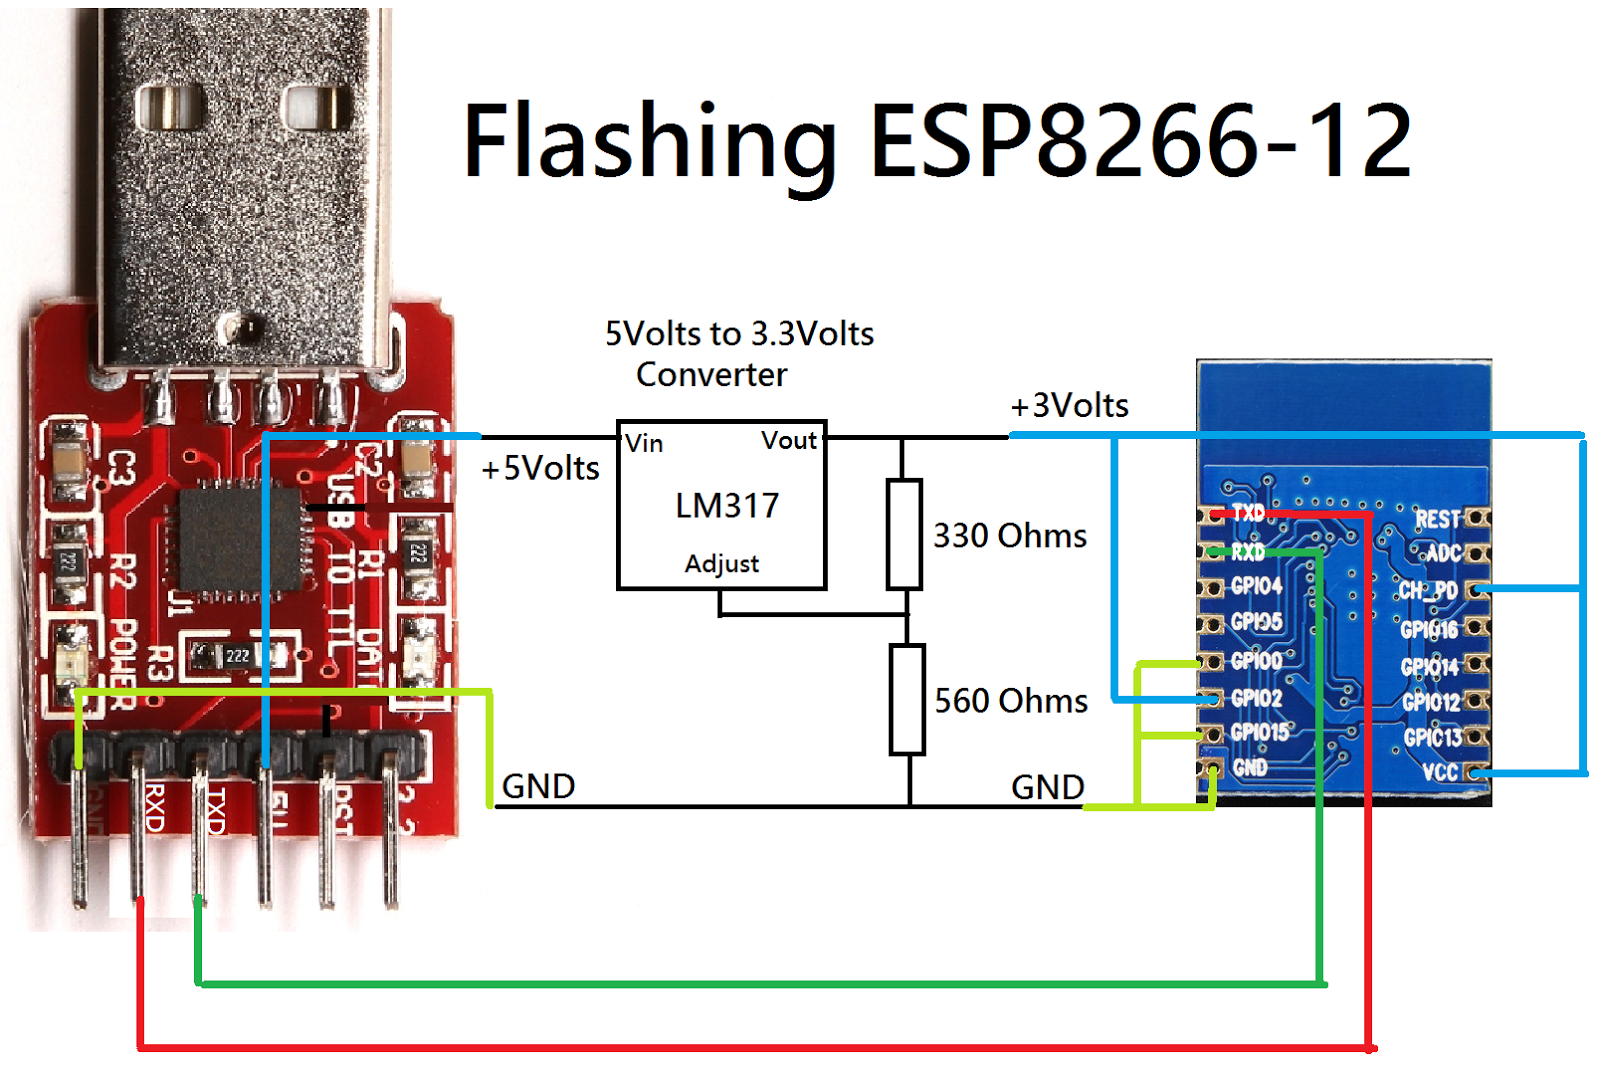 how to download the bin file on esp8266